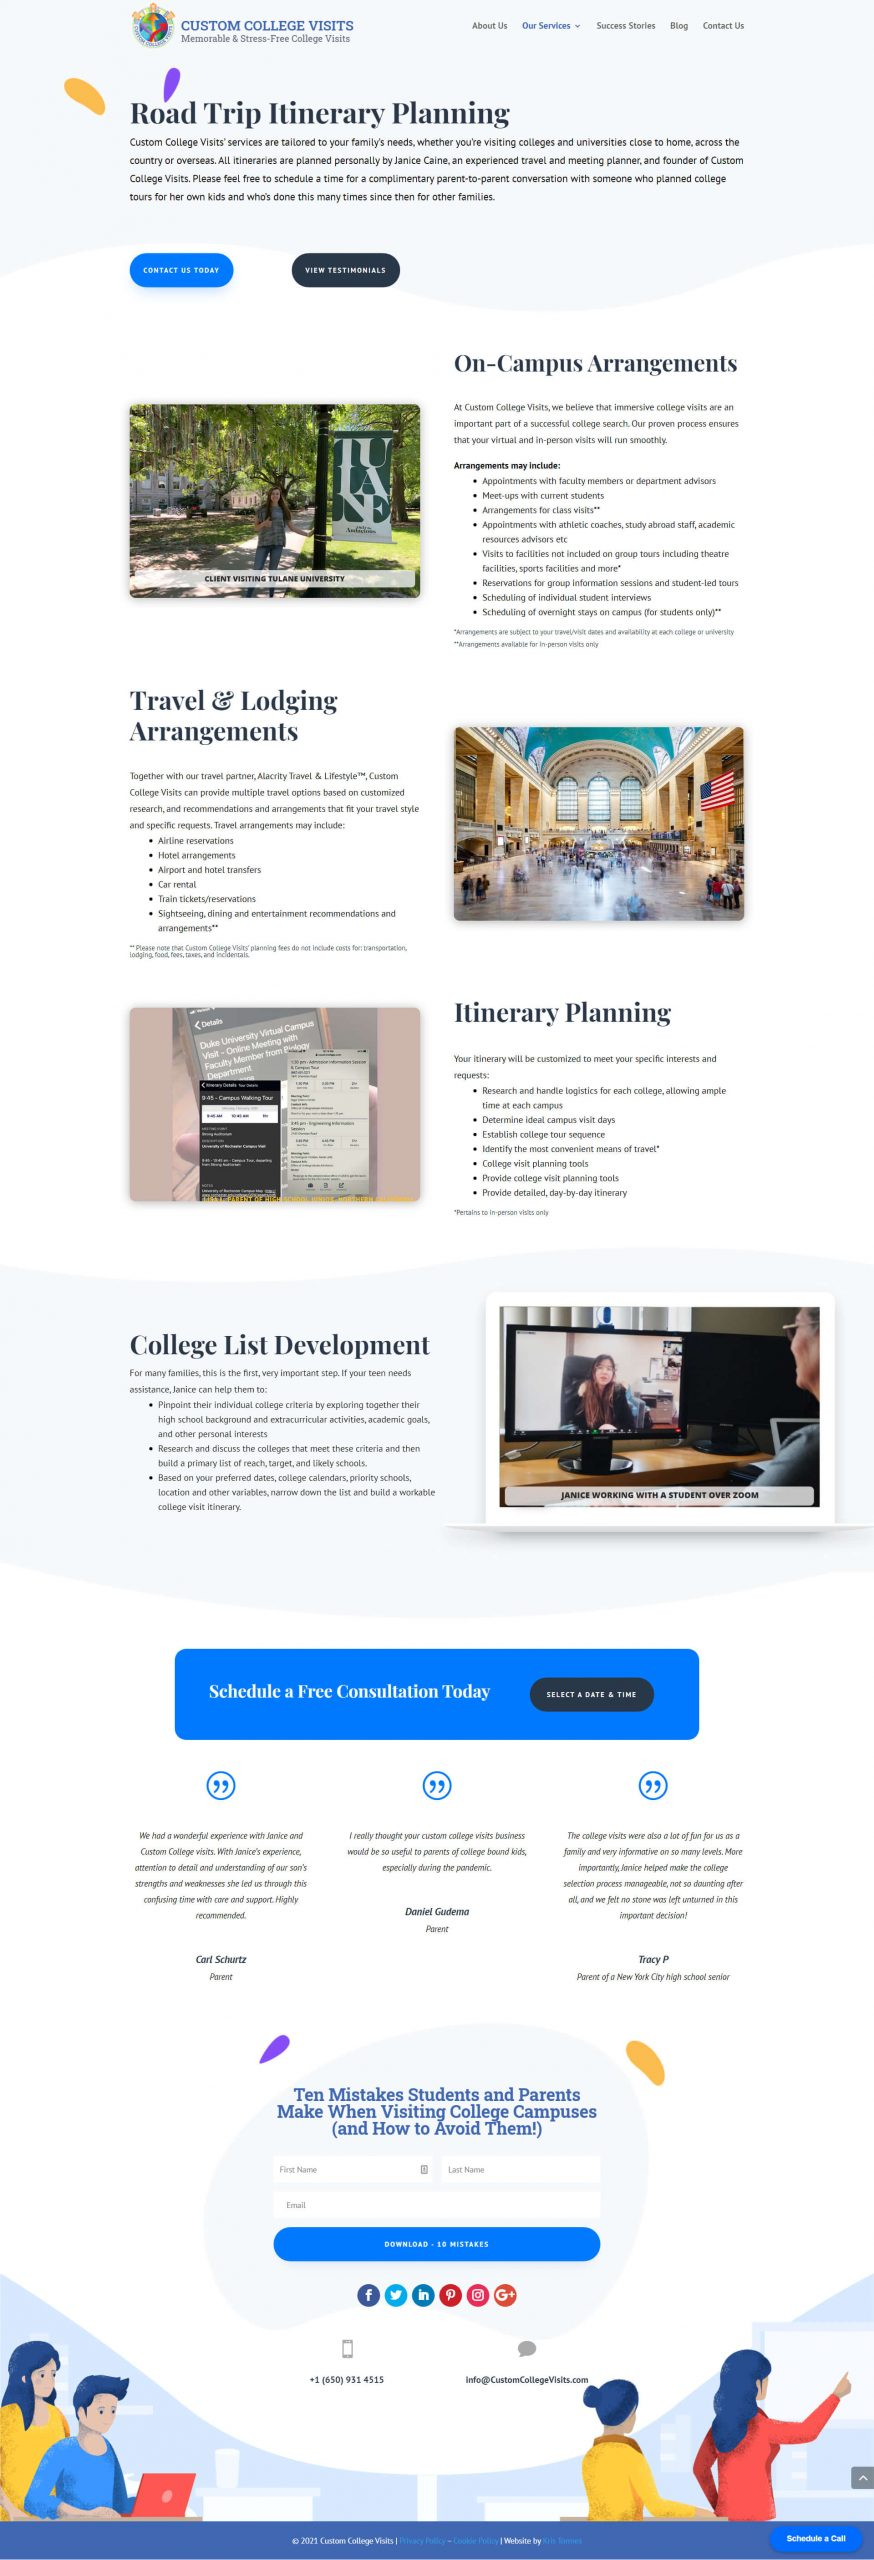 Custom College Visits Services